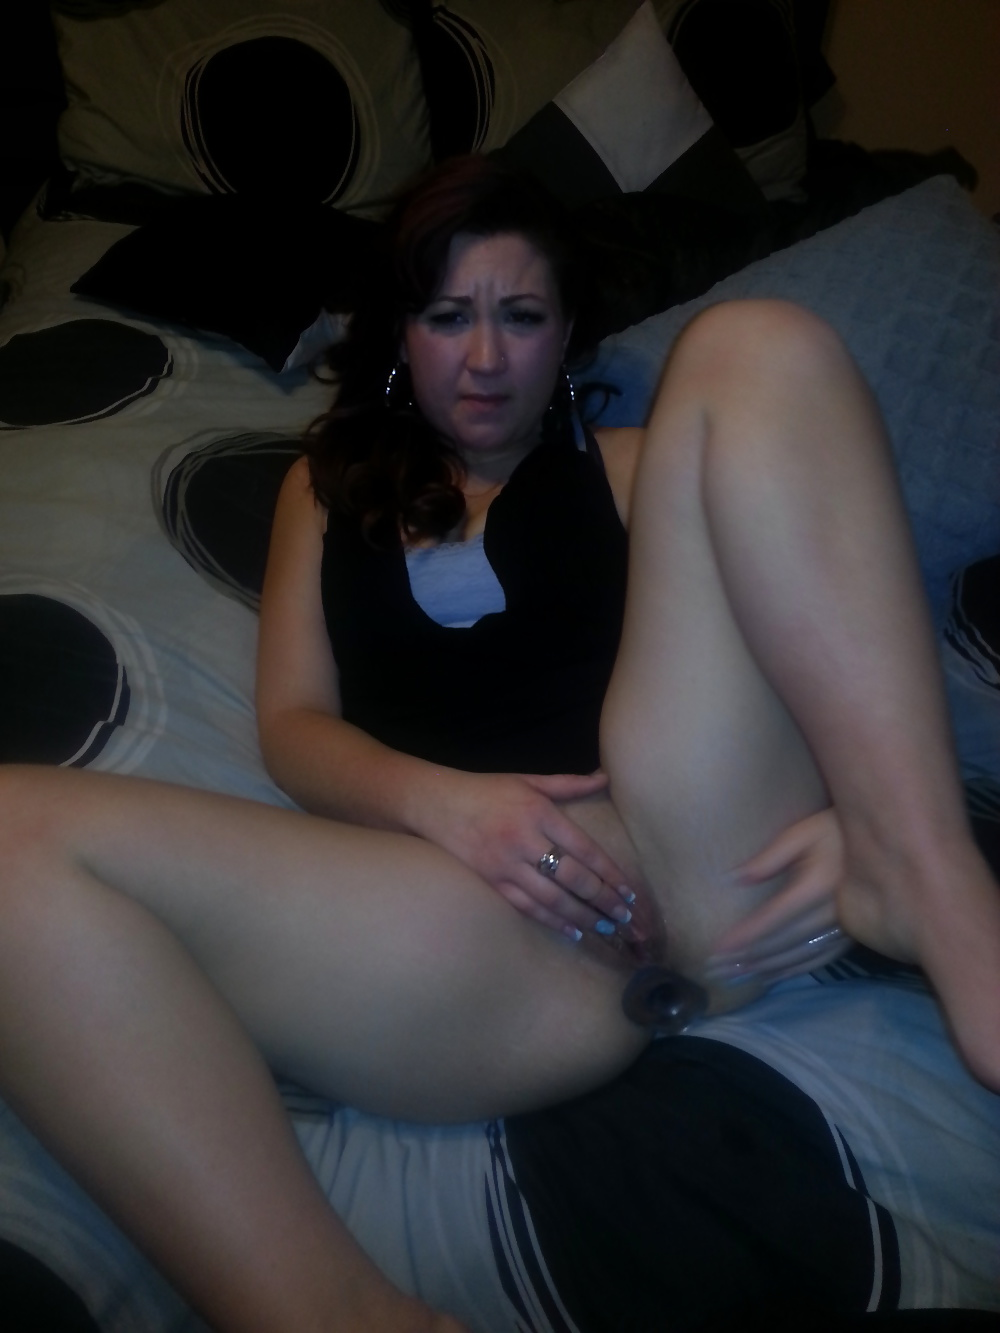 Sammie louisburg 27 min video of me with 2 men - 1 part 9